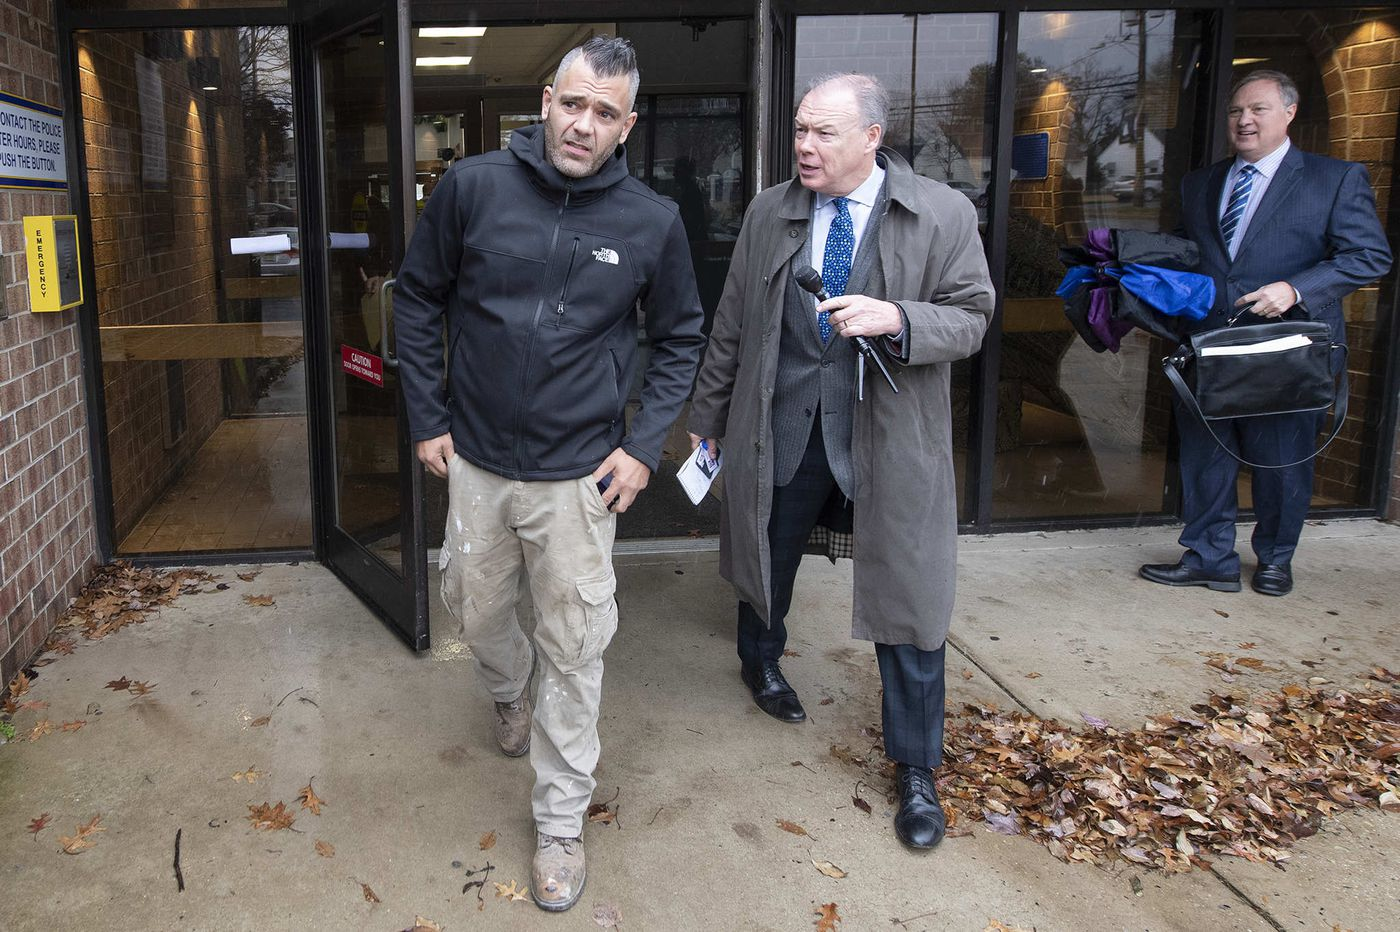 Mark D'Amico, accused in $400,000 GoFundMe scam, gets eviction hearing postponed